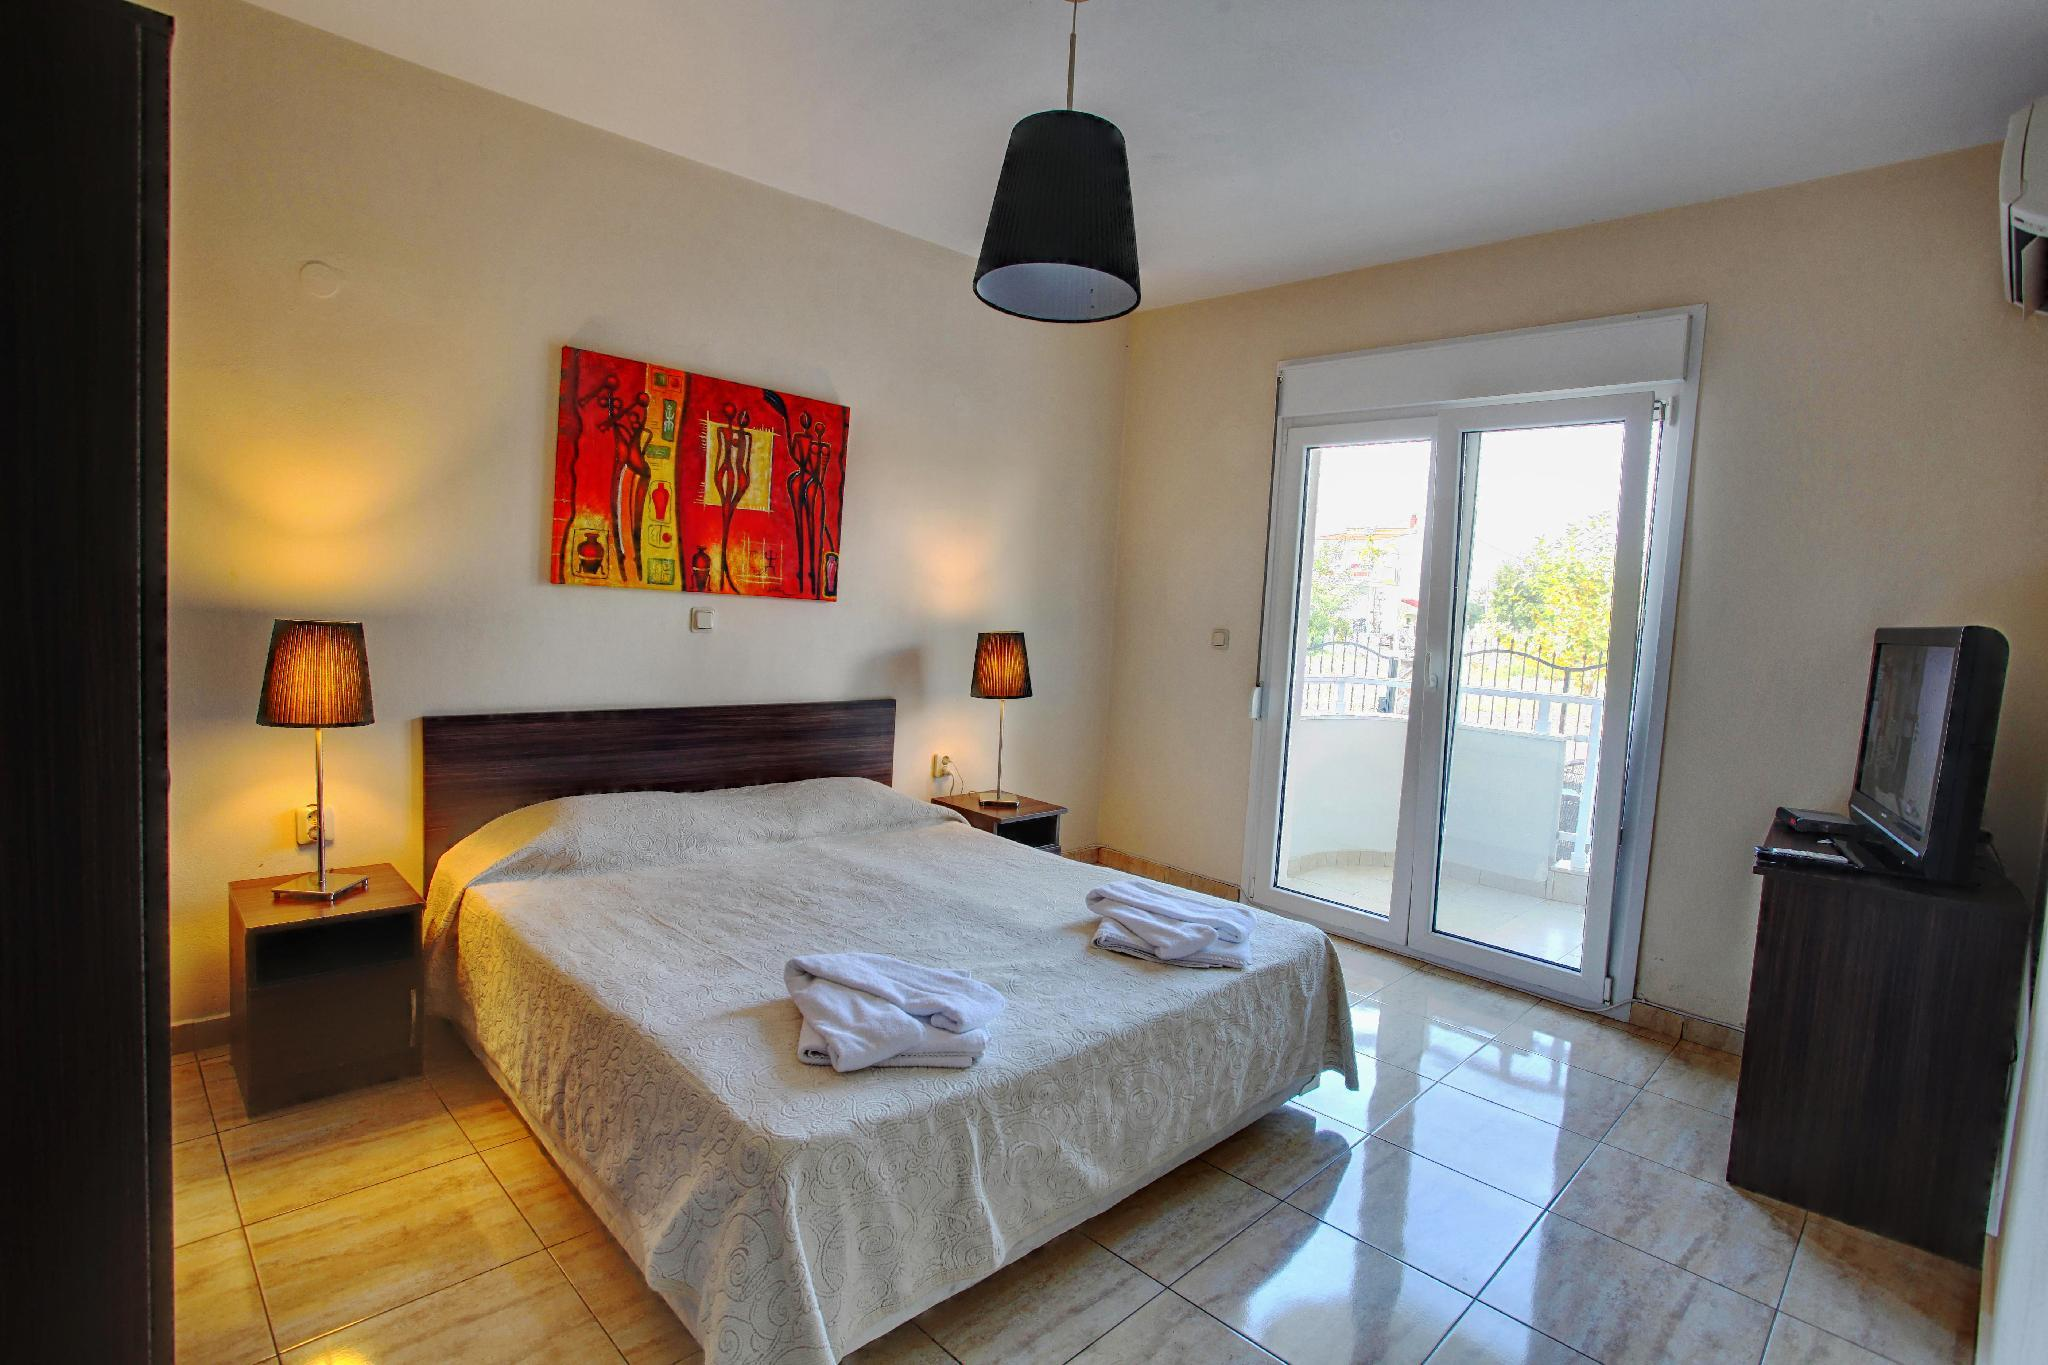 Apartamento com 1 quarto (One Bedroom Apartment)